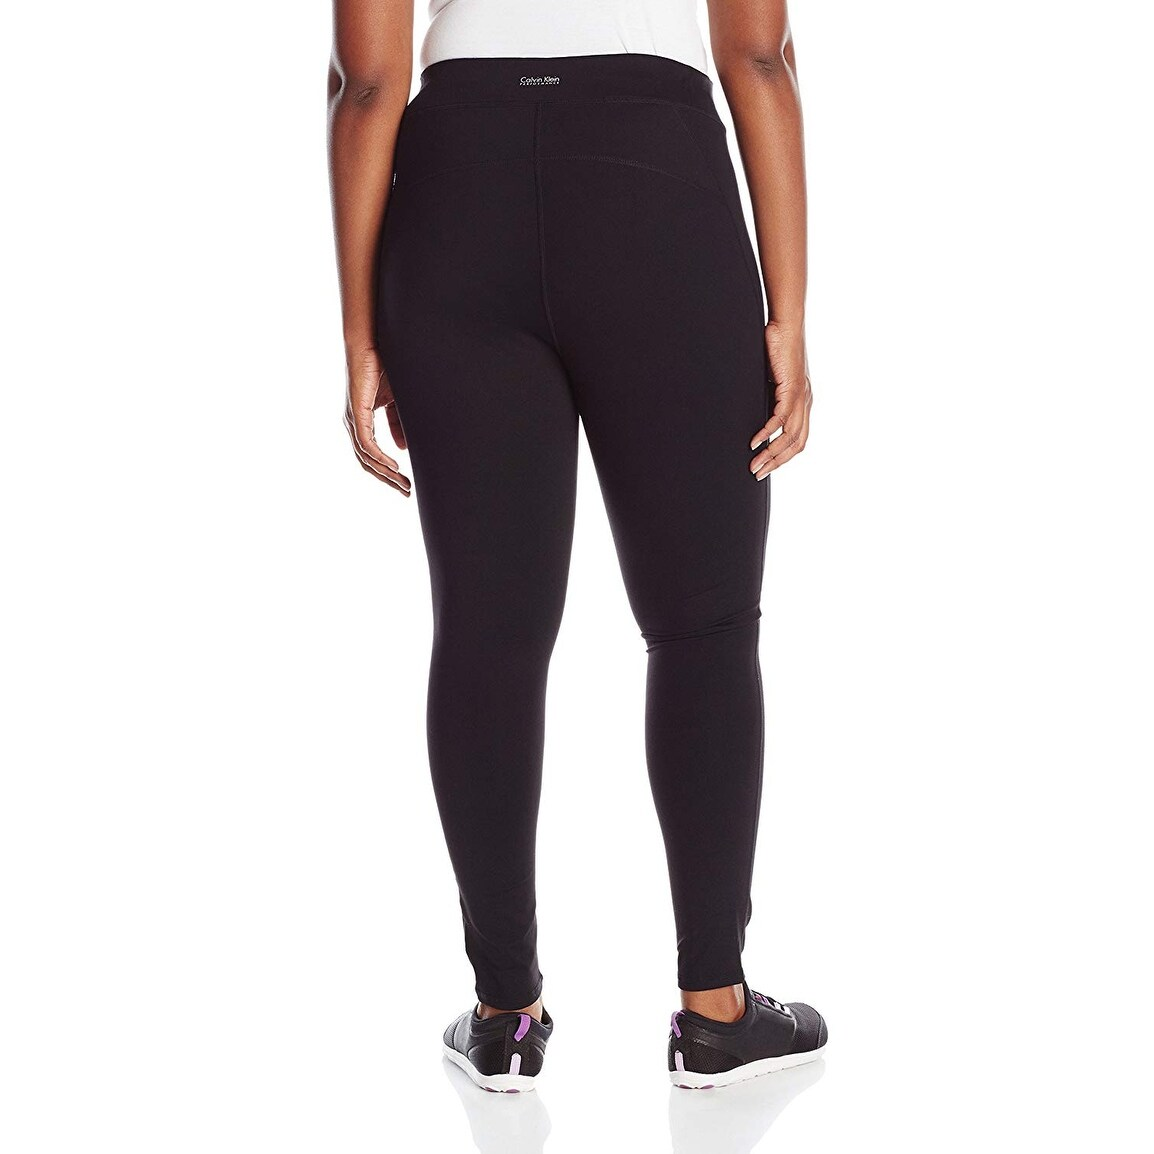 5654e64e00 Shop Calvin Klein Performance Women's Size Plus High Waist Ankle Legging  Black Size Extra Large - X-Large - On Sale - Free Shipping Today -  Overstock - ...